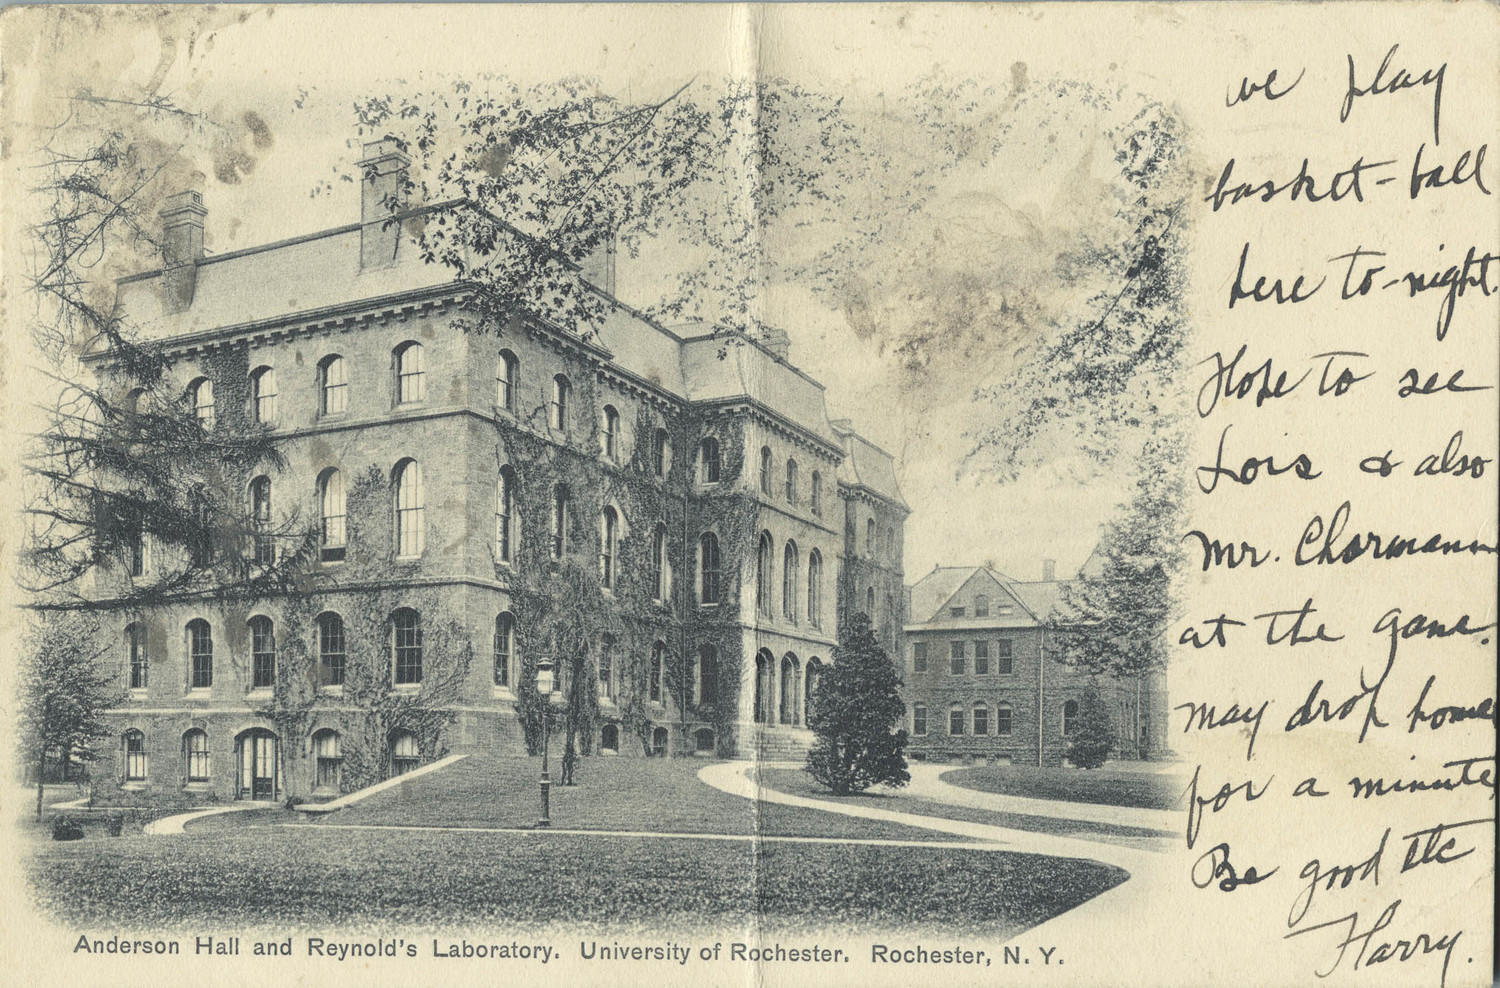 Anderson Hall and Reynolds Laboratory. University of Rochester, Rochester, N.Y.